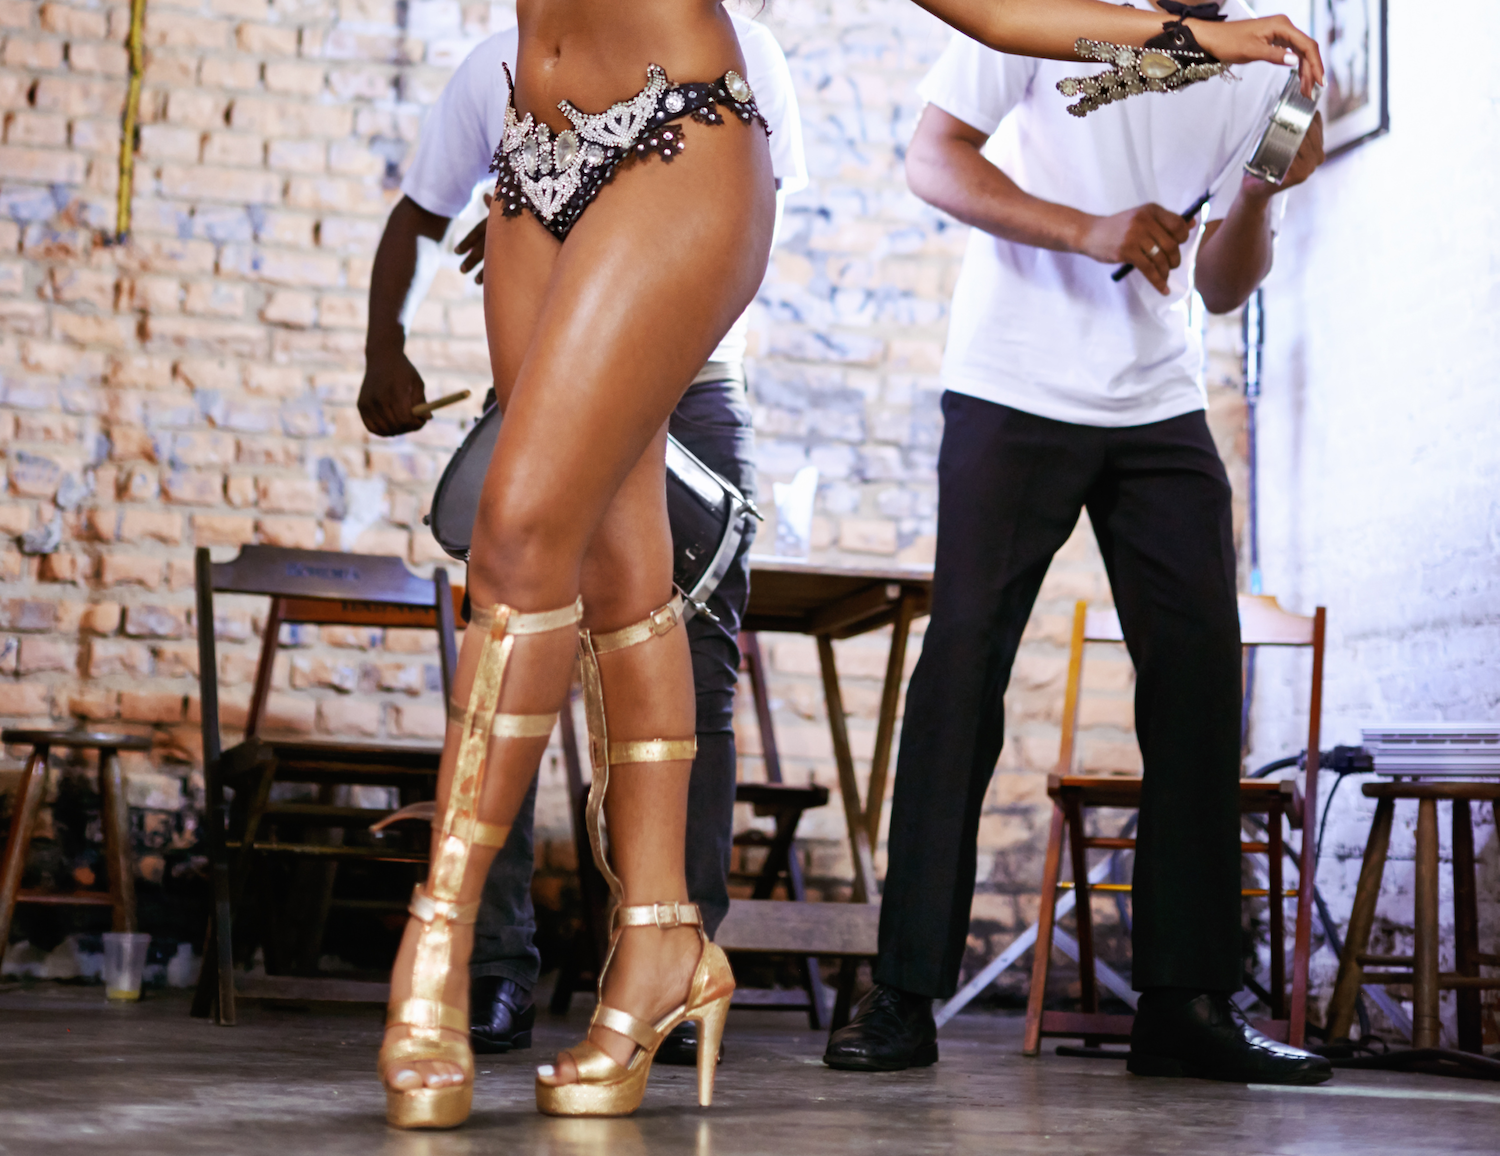 Learn Beautiful Samba Combinations step-by-step with Vanessa. THIS IS An online program for all dancers!